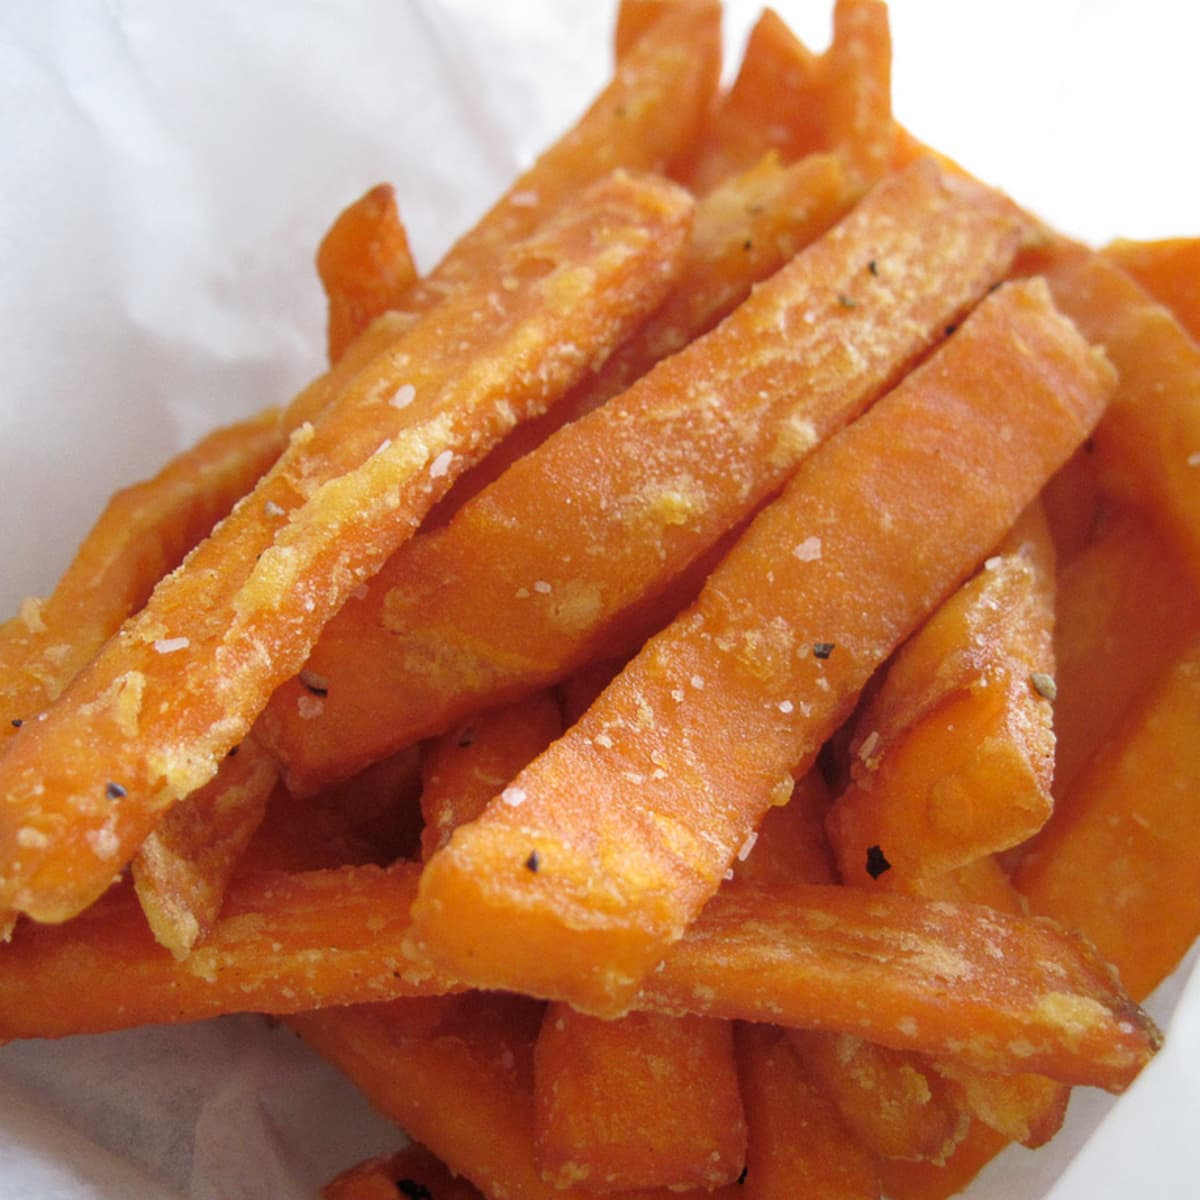 News_Byrd's_sweet potato_french fries